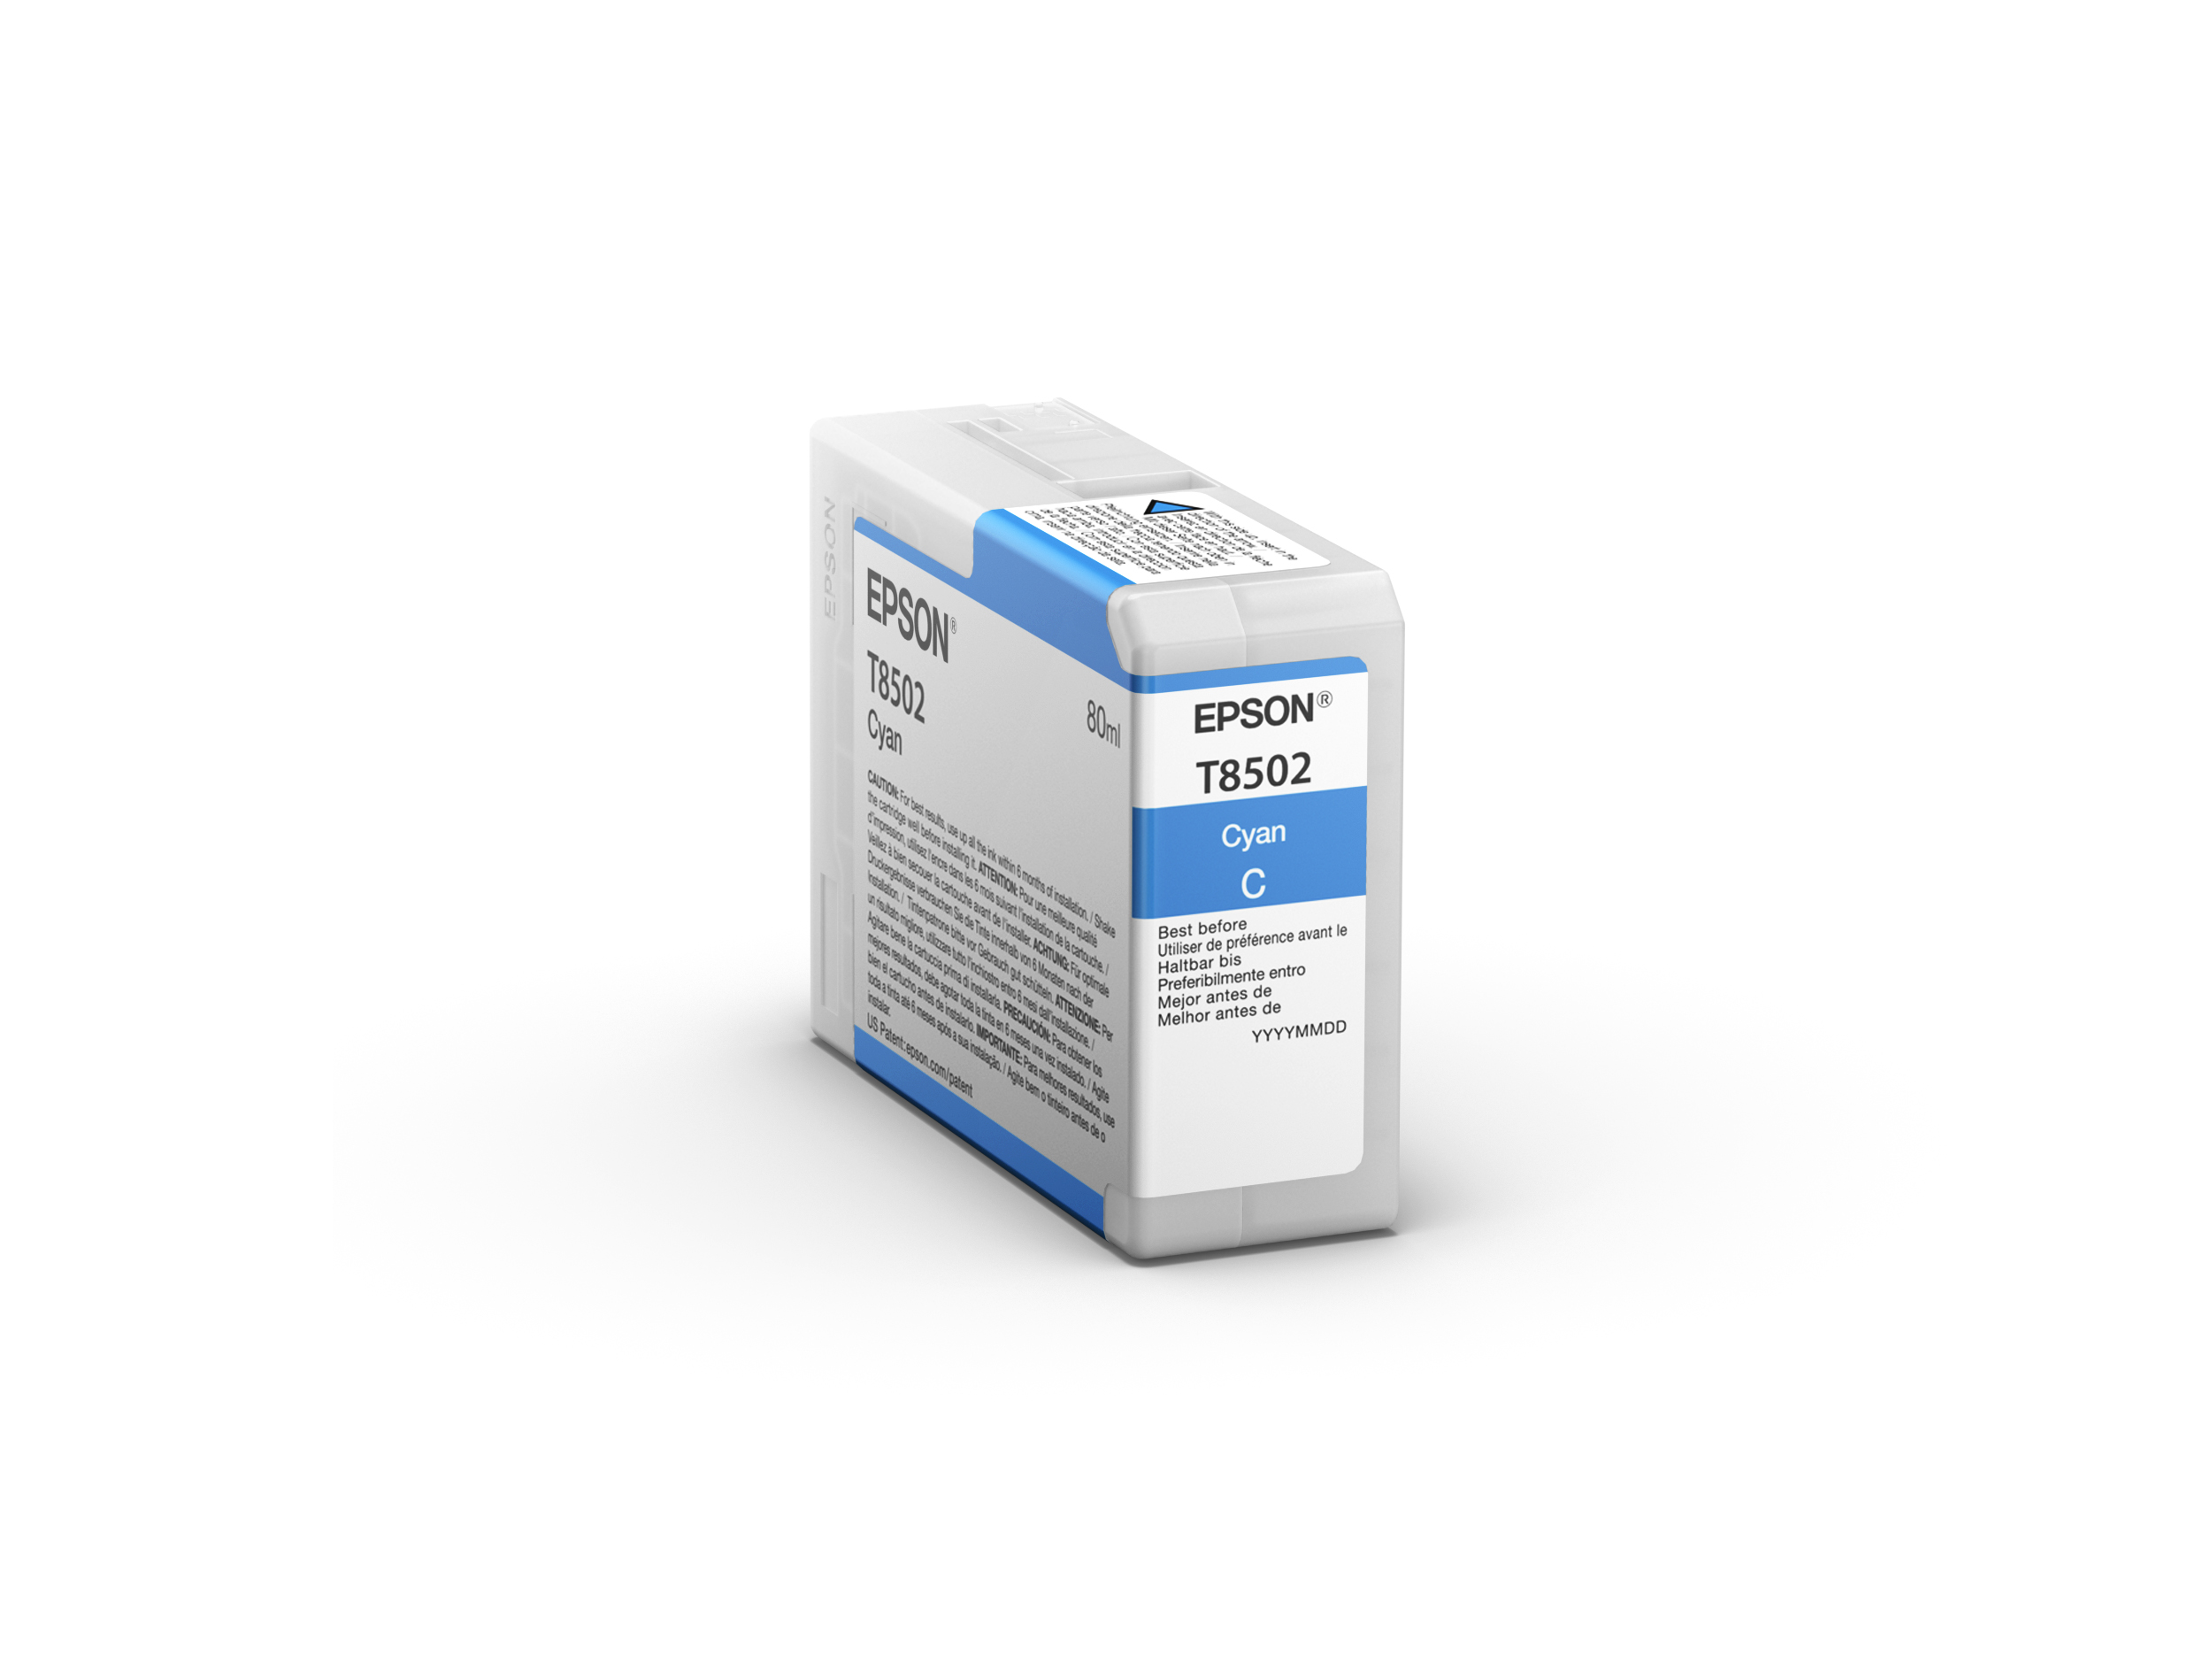 Epson SureColor SC-P800 Ultrachrome HD Ink CYAN 80ml